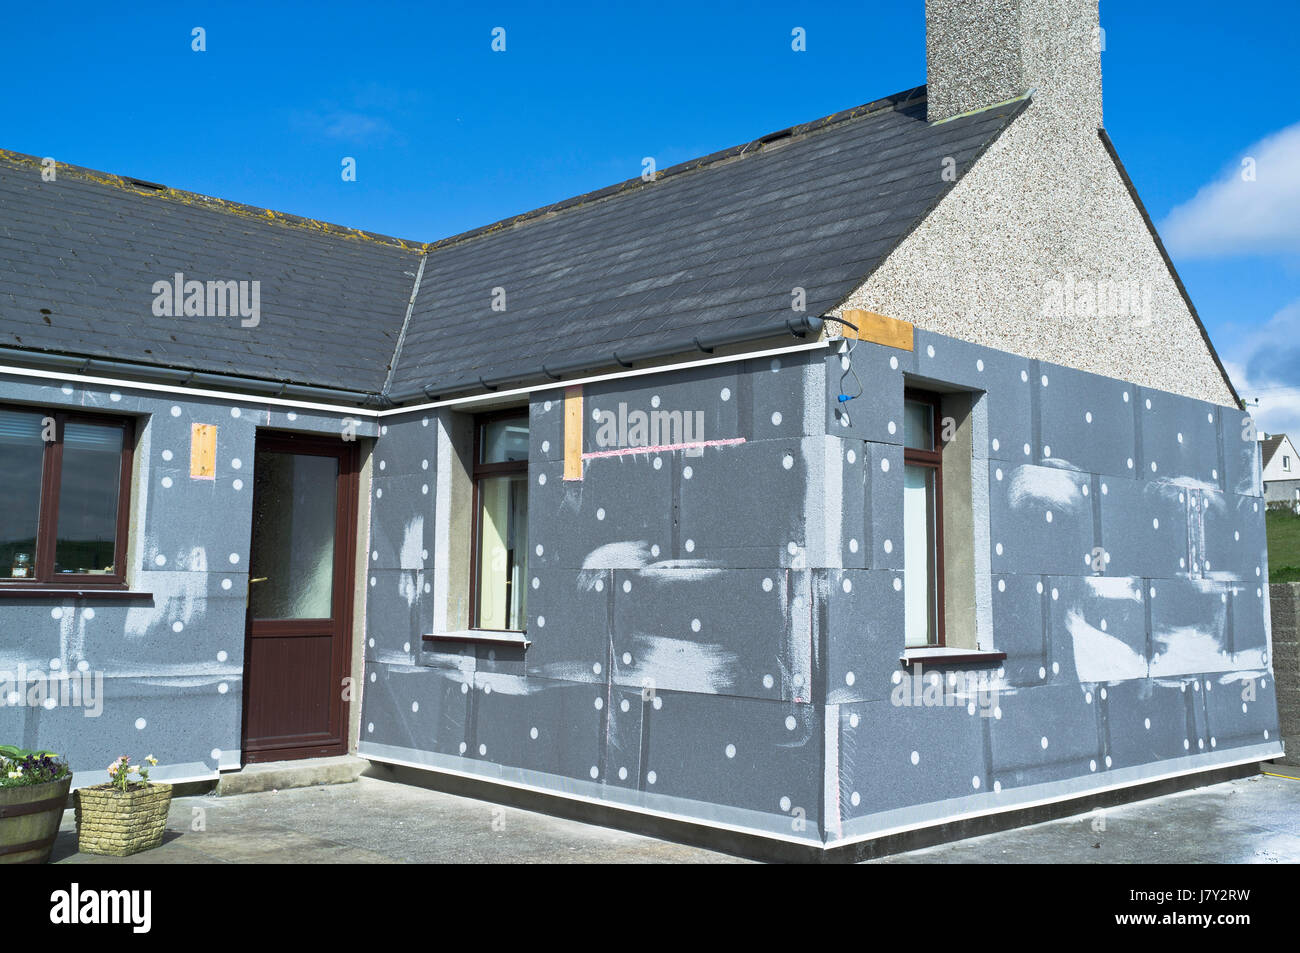 Wall Insulation Heating Building House Insulation Uk External Wall Stock Photo 142580477 Alamy